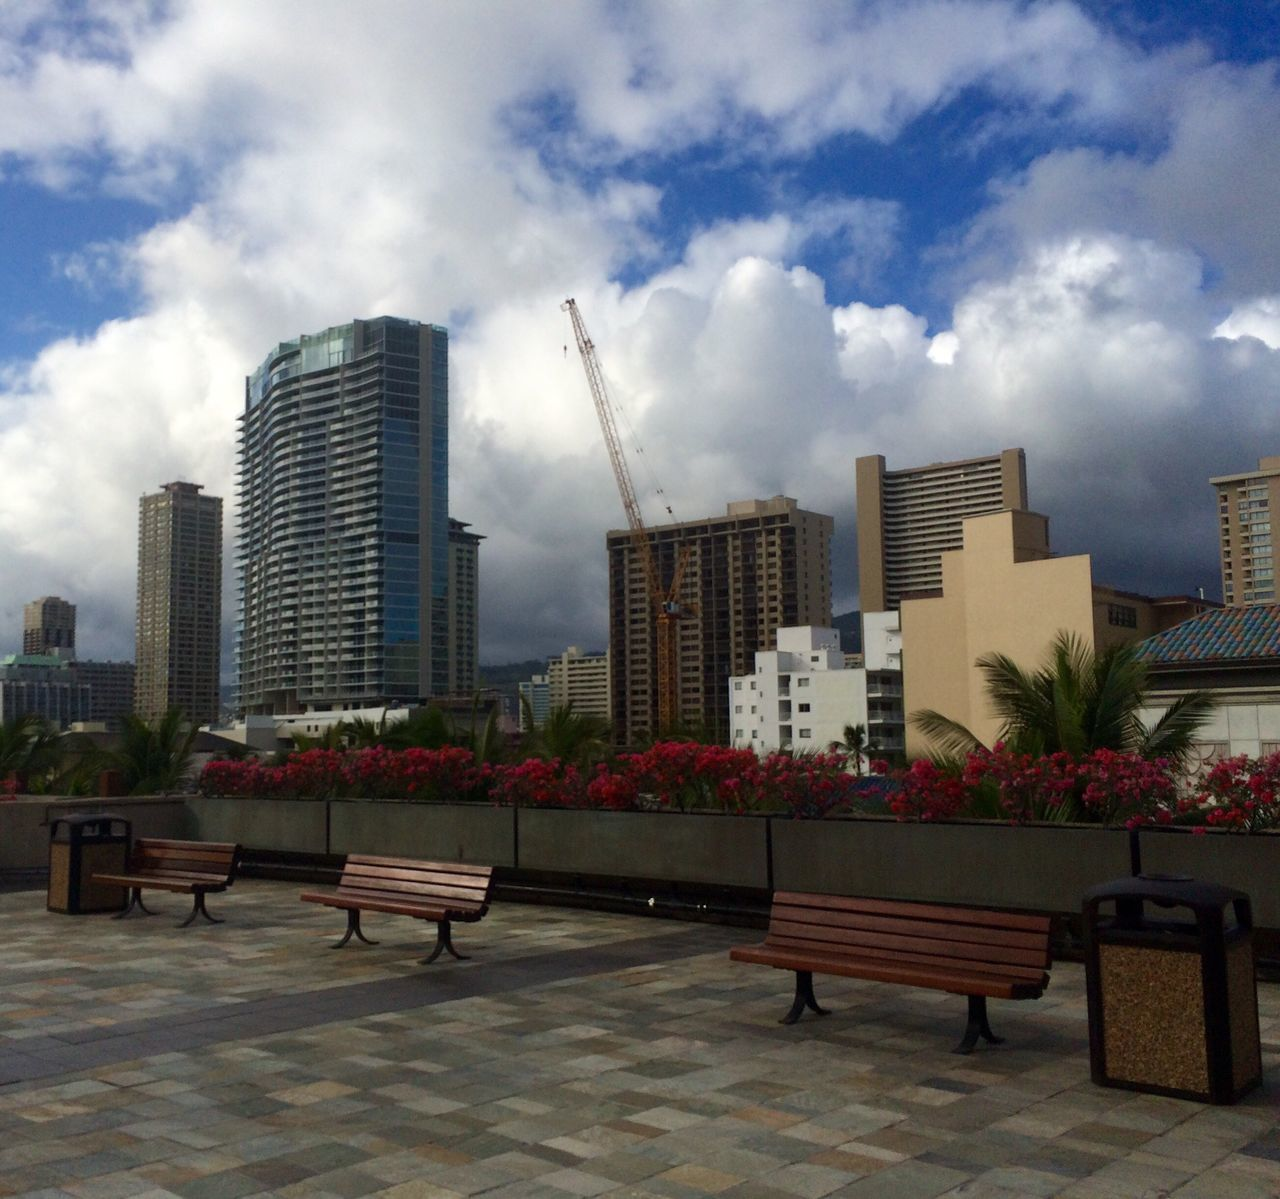 architecture, skyscraper, city, building exterior, sky, modern, cityscape, built structure, cloud - sky, outdoors, no people, growth, urban skyline, day